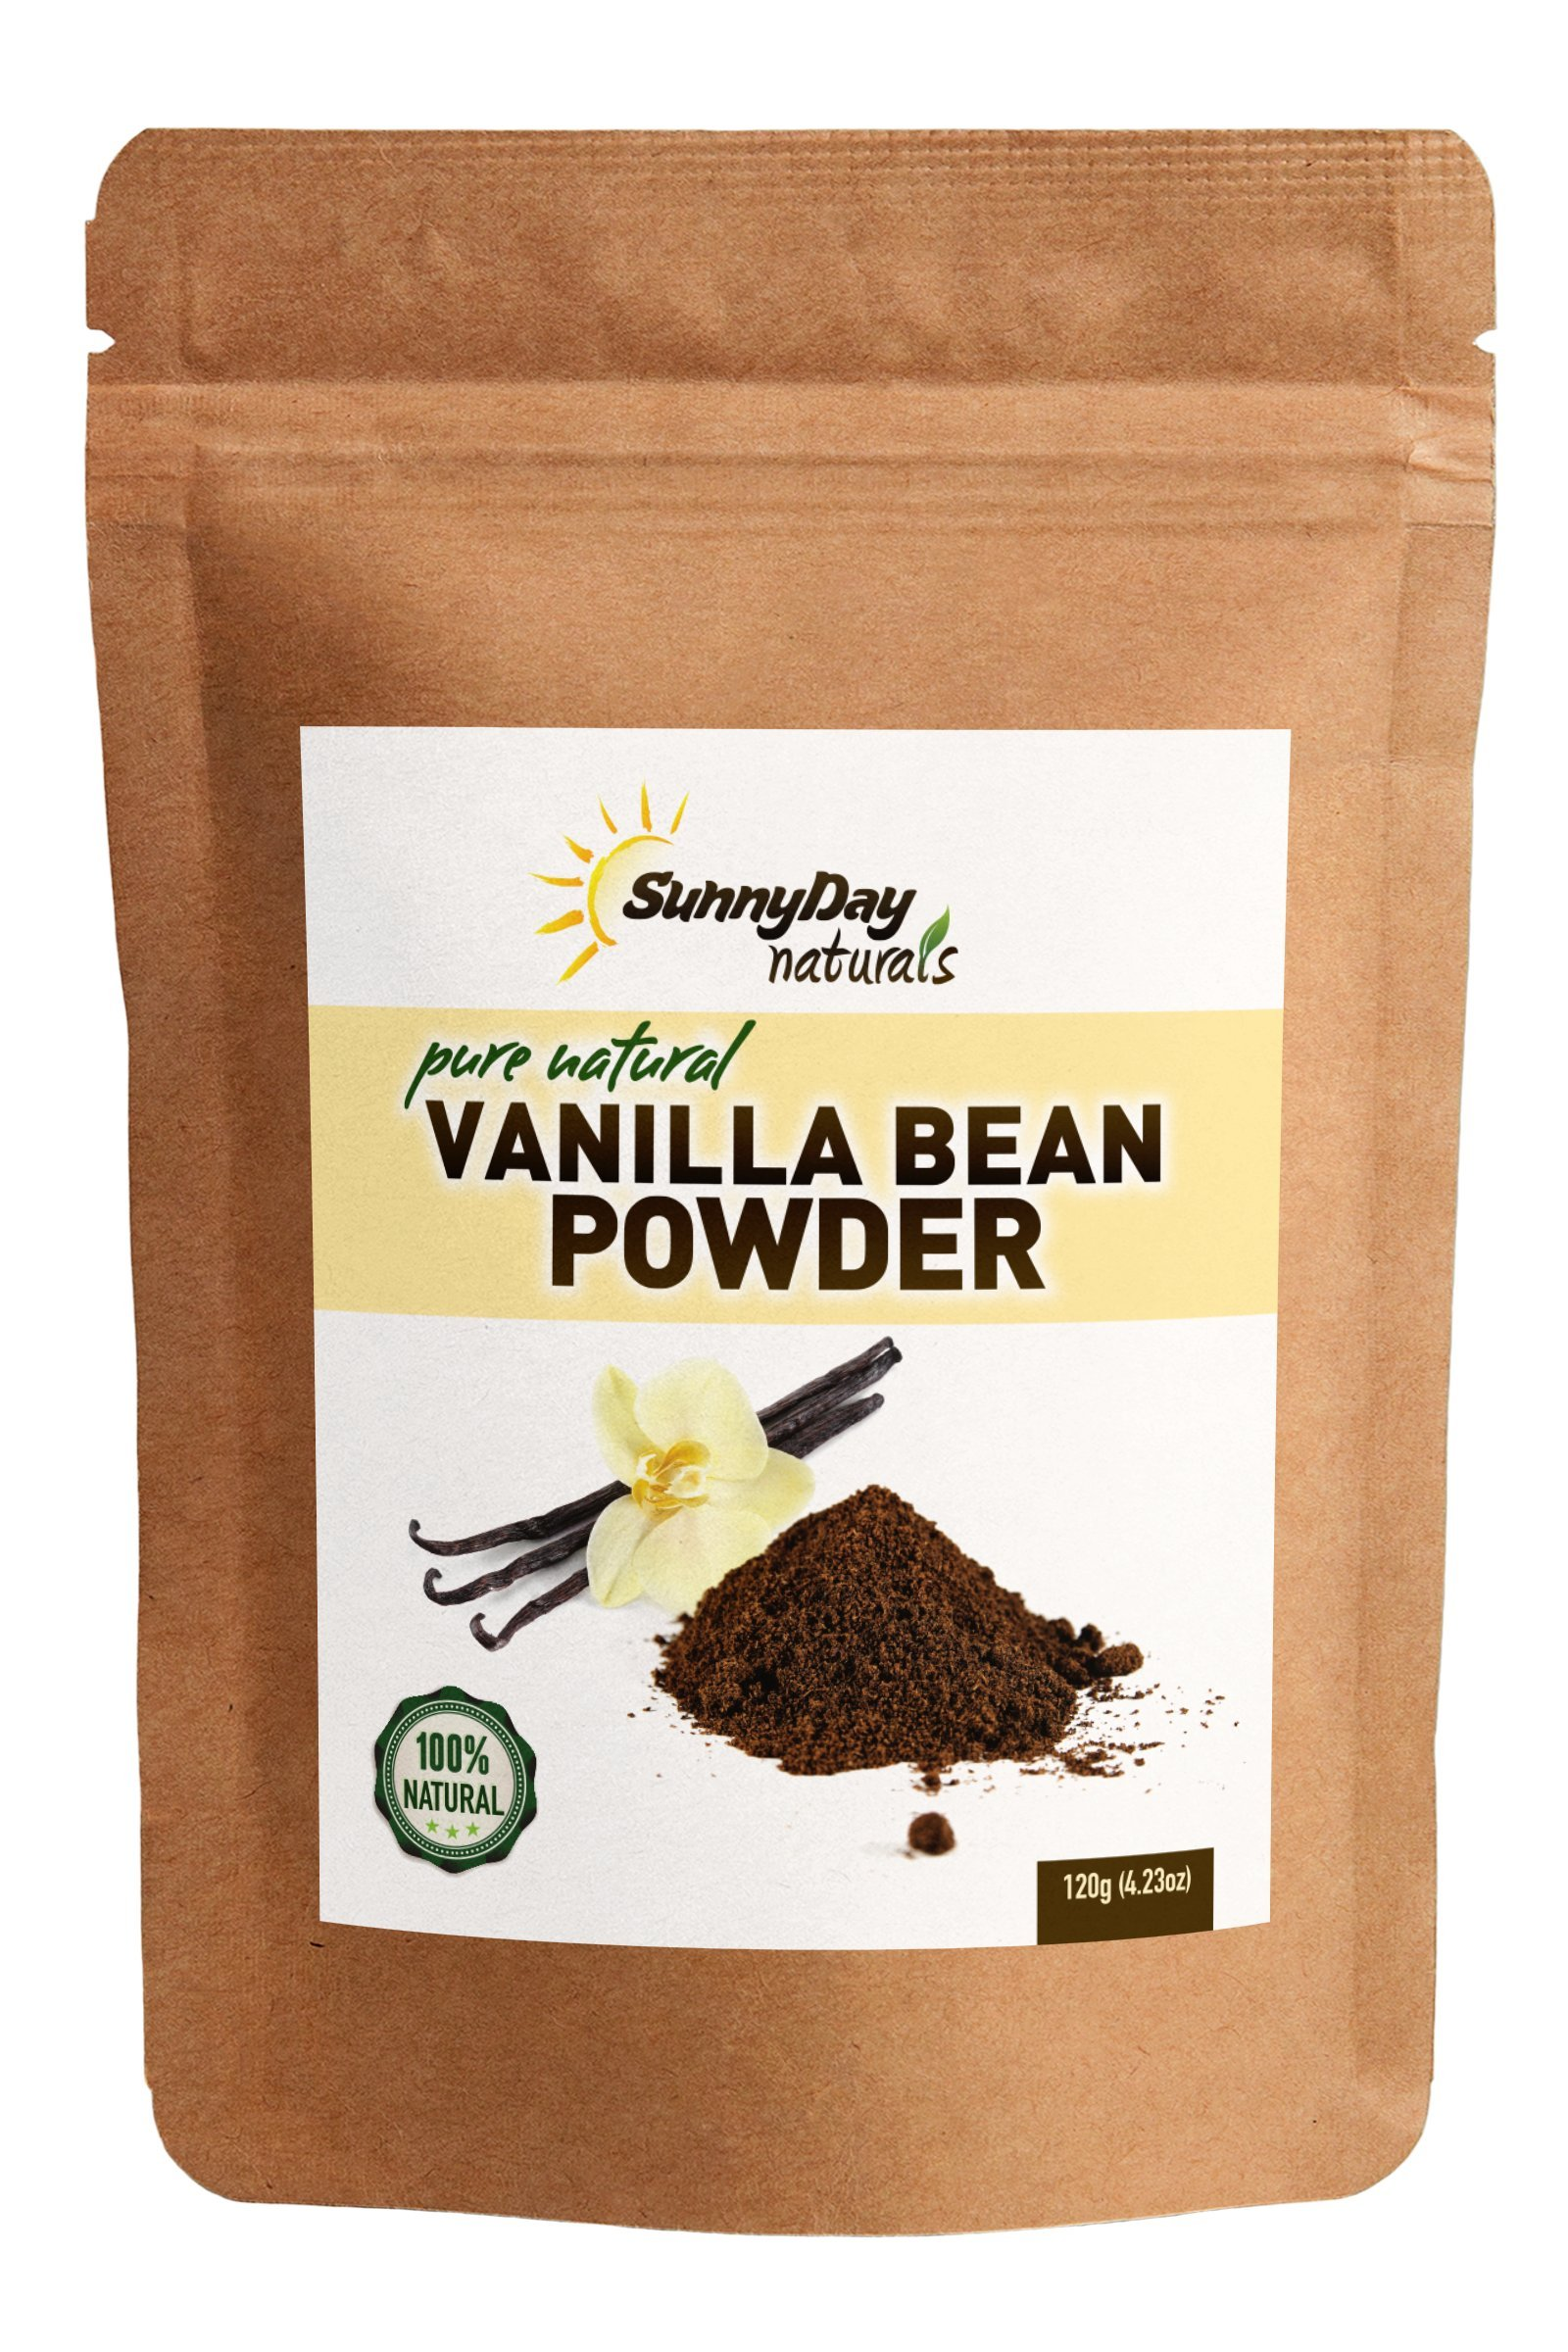 Vanilla Bean Powder, 4.23 Oz - Raw Ground Vanilla Bean - Unsweetened, Gluten-Free - EXTREMELY FRESH - Ground Moments Before Packaging!